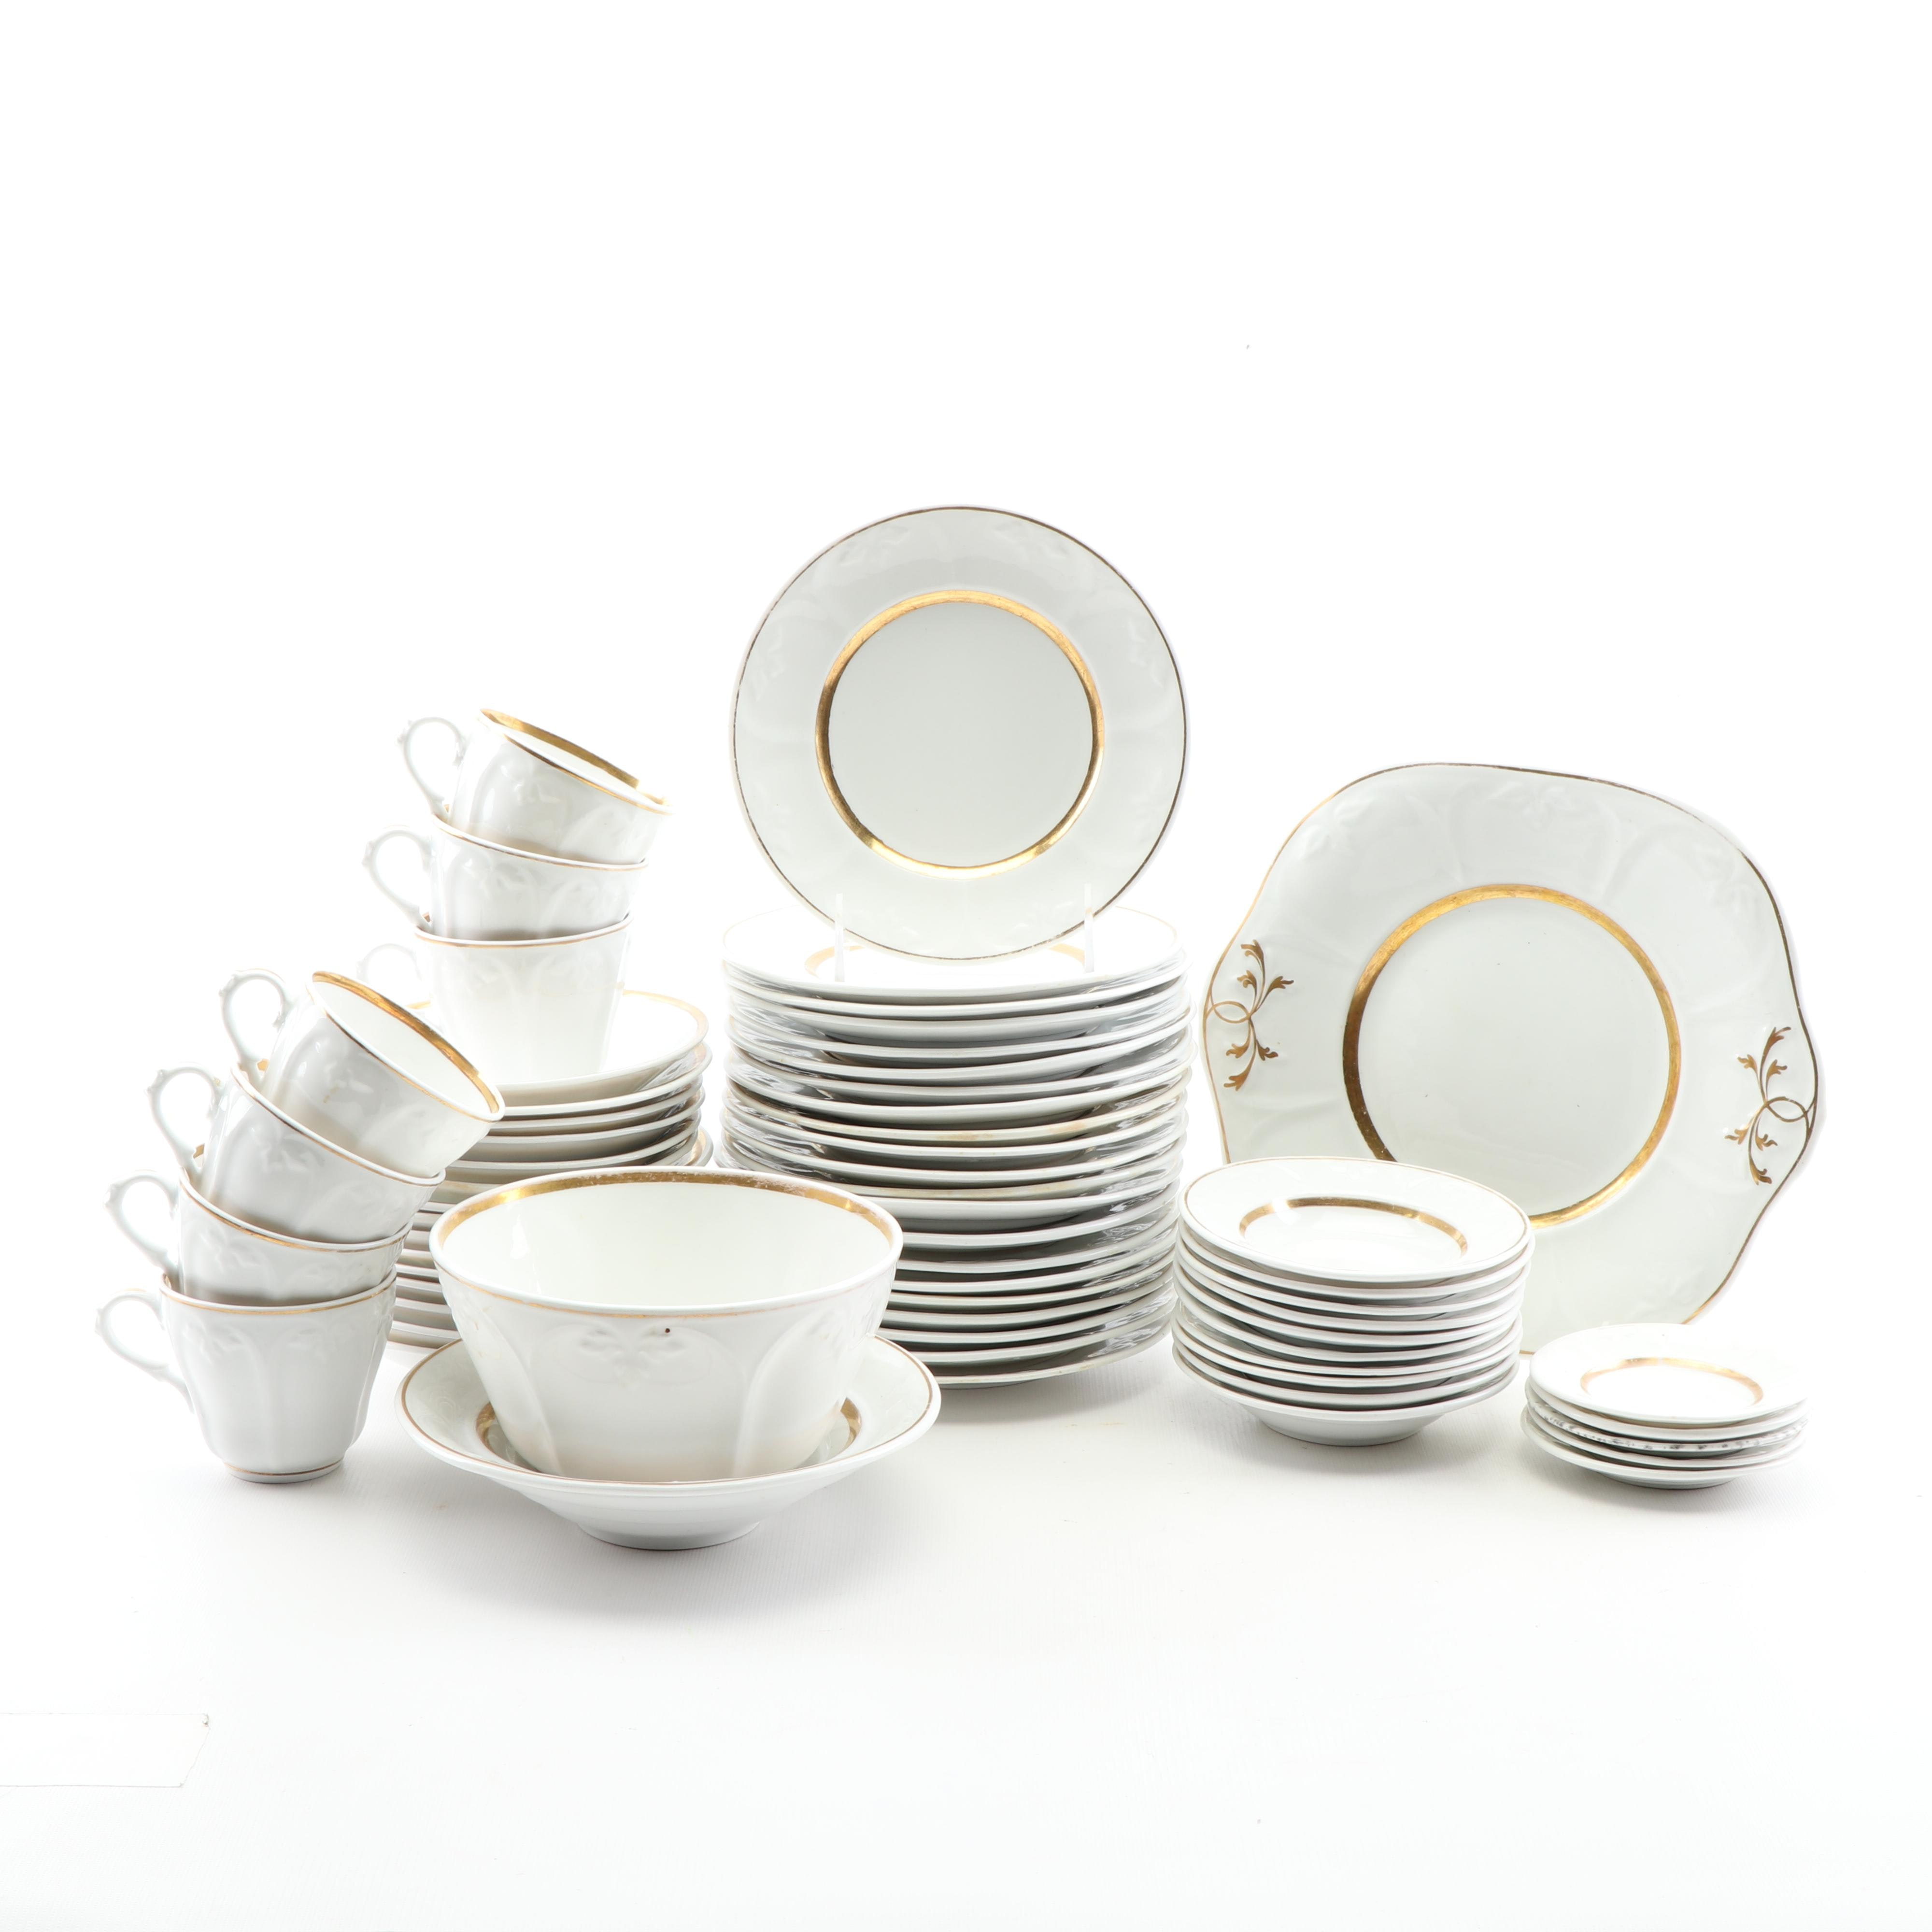 Gilded White Ceramic Dinnerware Set